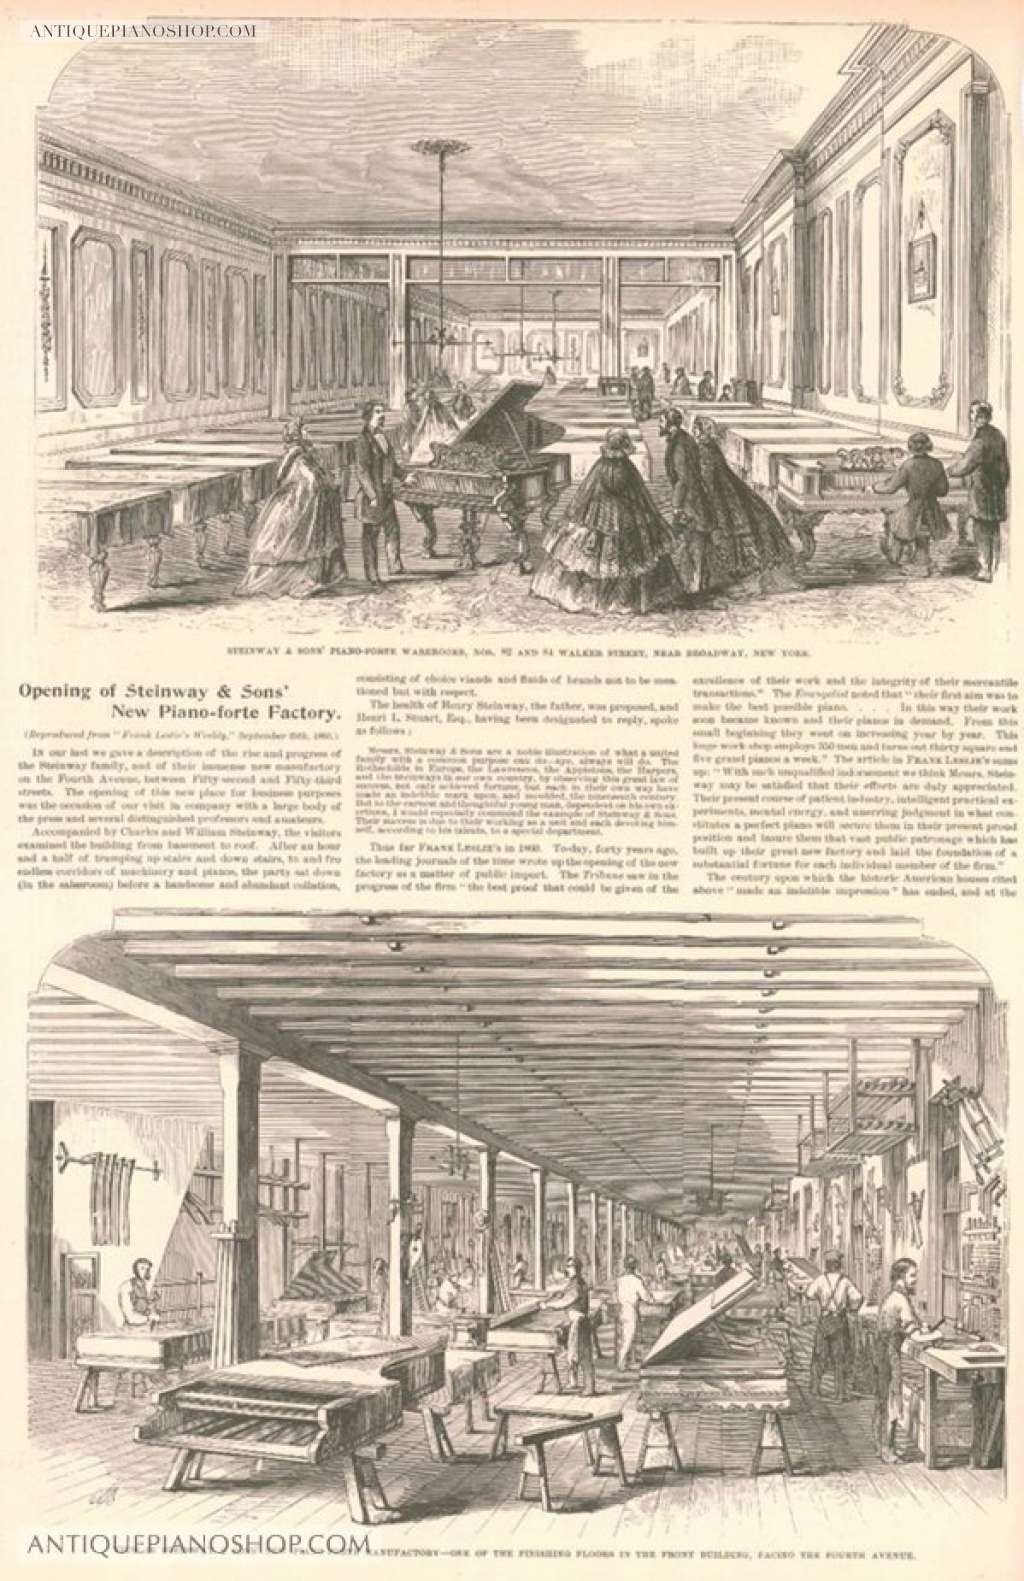 Newspaper advertisement for the opening of the new factory  (http://antiquepianoshop.com/)